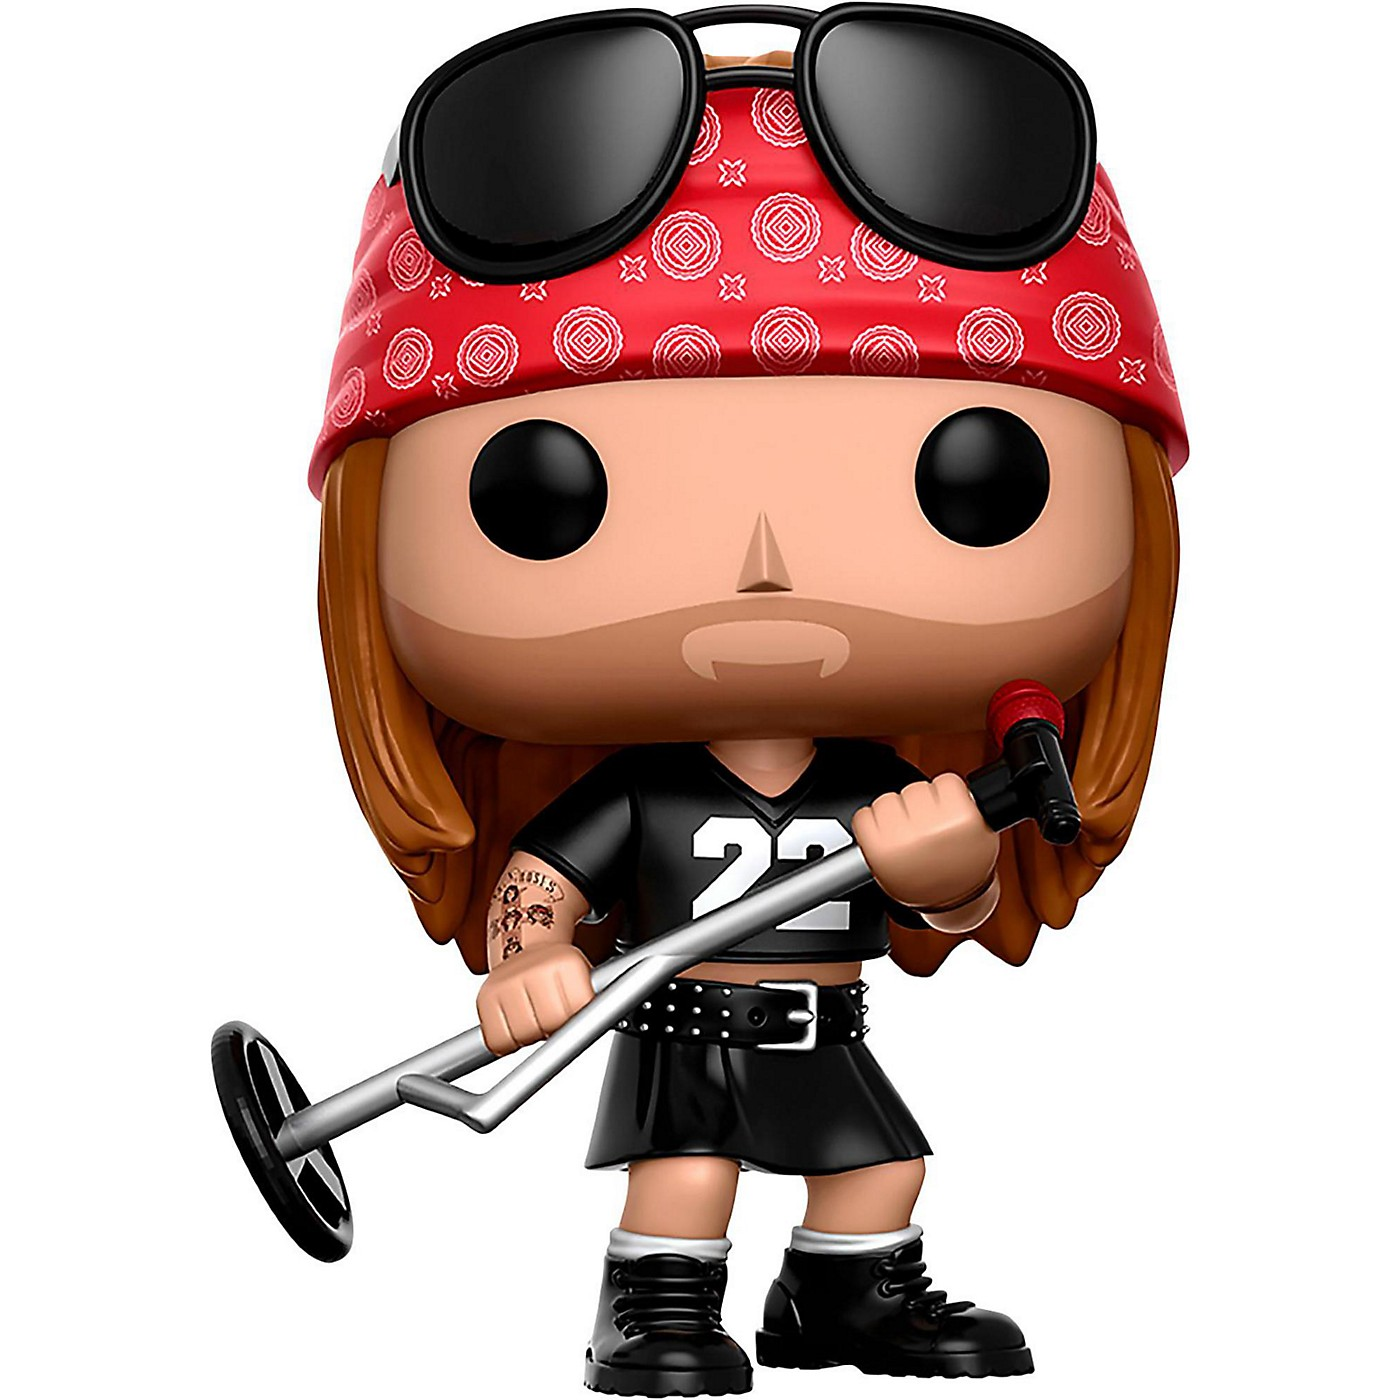 Funko Guns N' Roses Axl Rose Pop! Vinyl Figure thumbnail